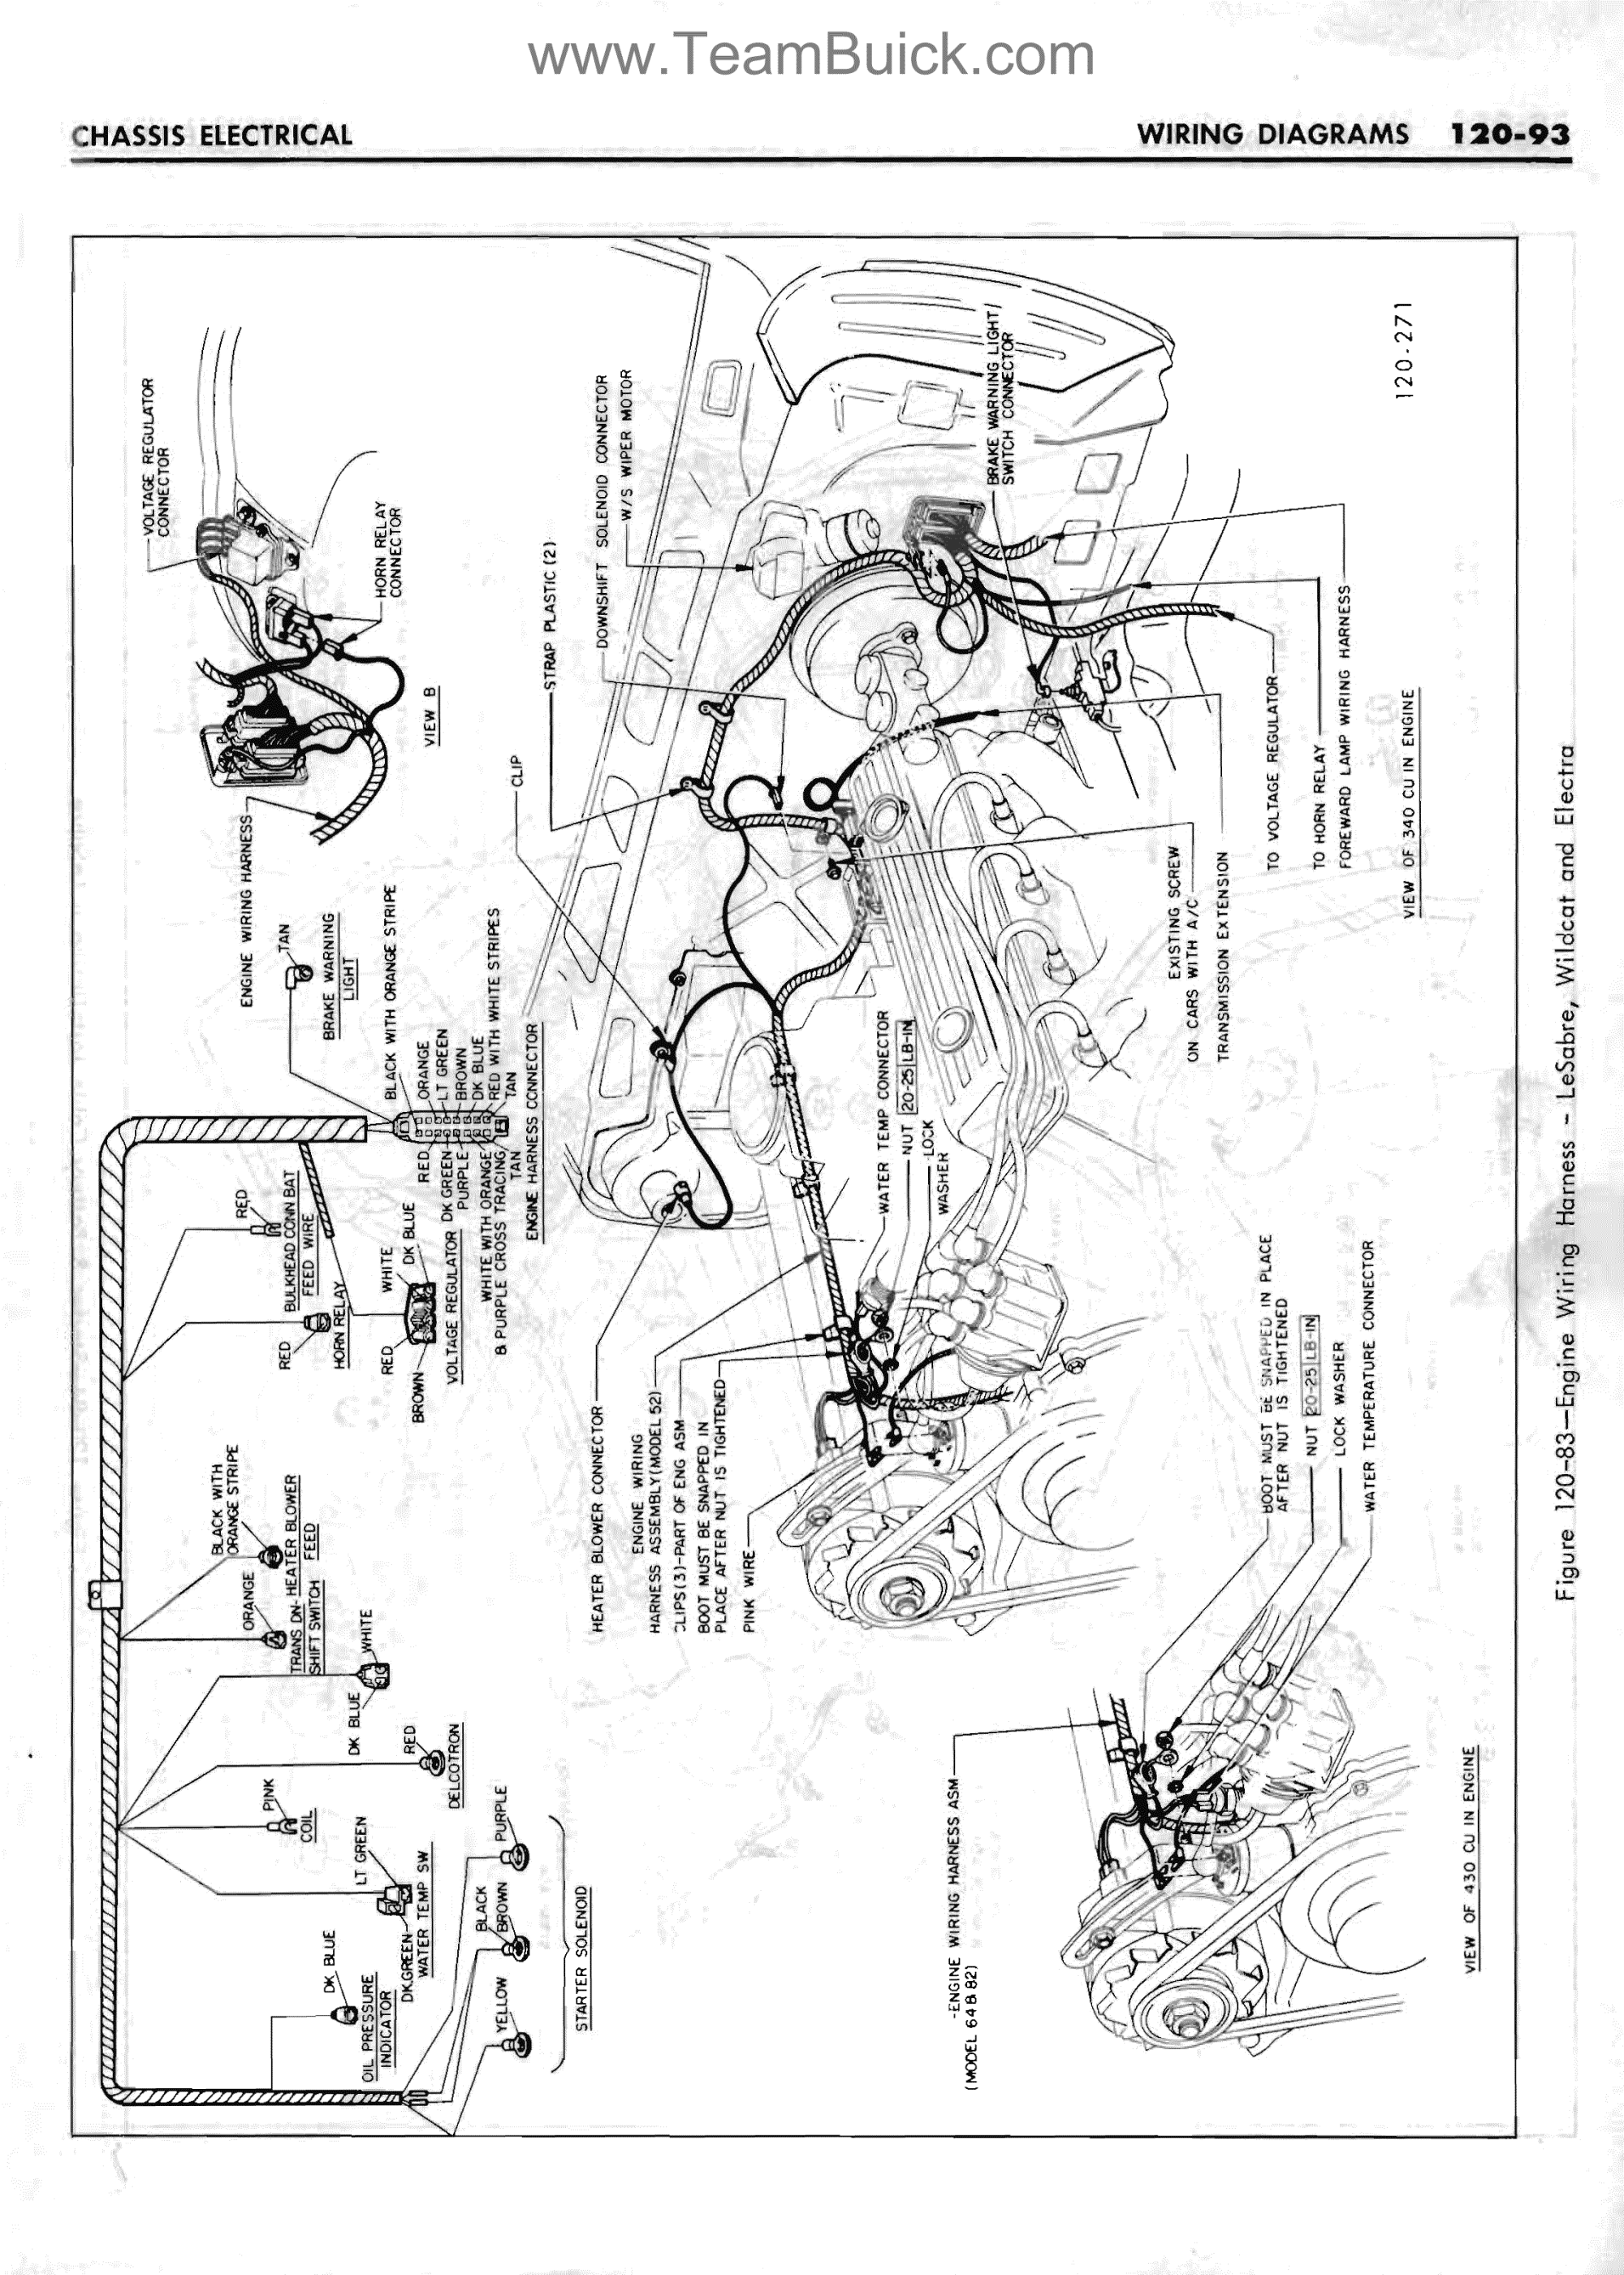 hight resolution of 1967 buick lesabre wildcat electra engine wiring harness rh teambuick com buick rendezvous wiring harness problems 1967 buick riviera wiring harness